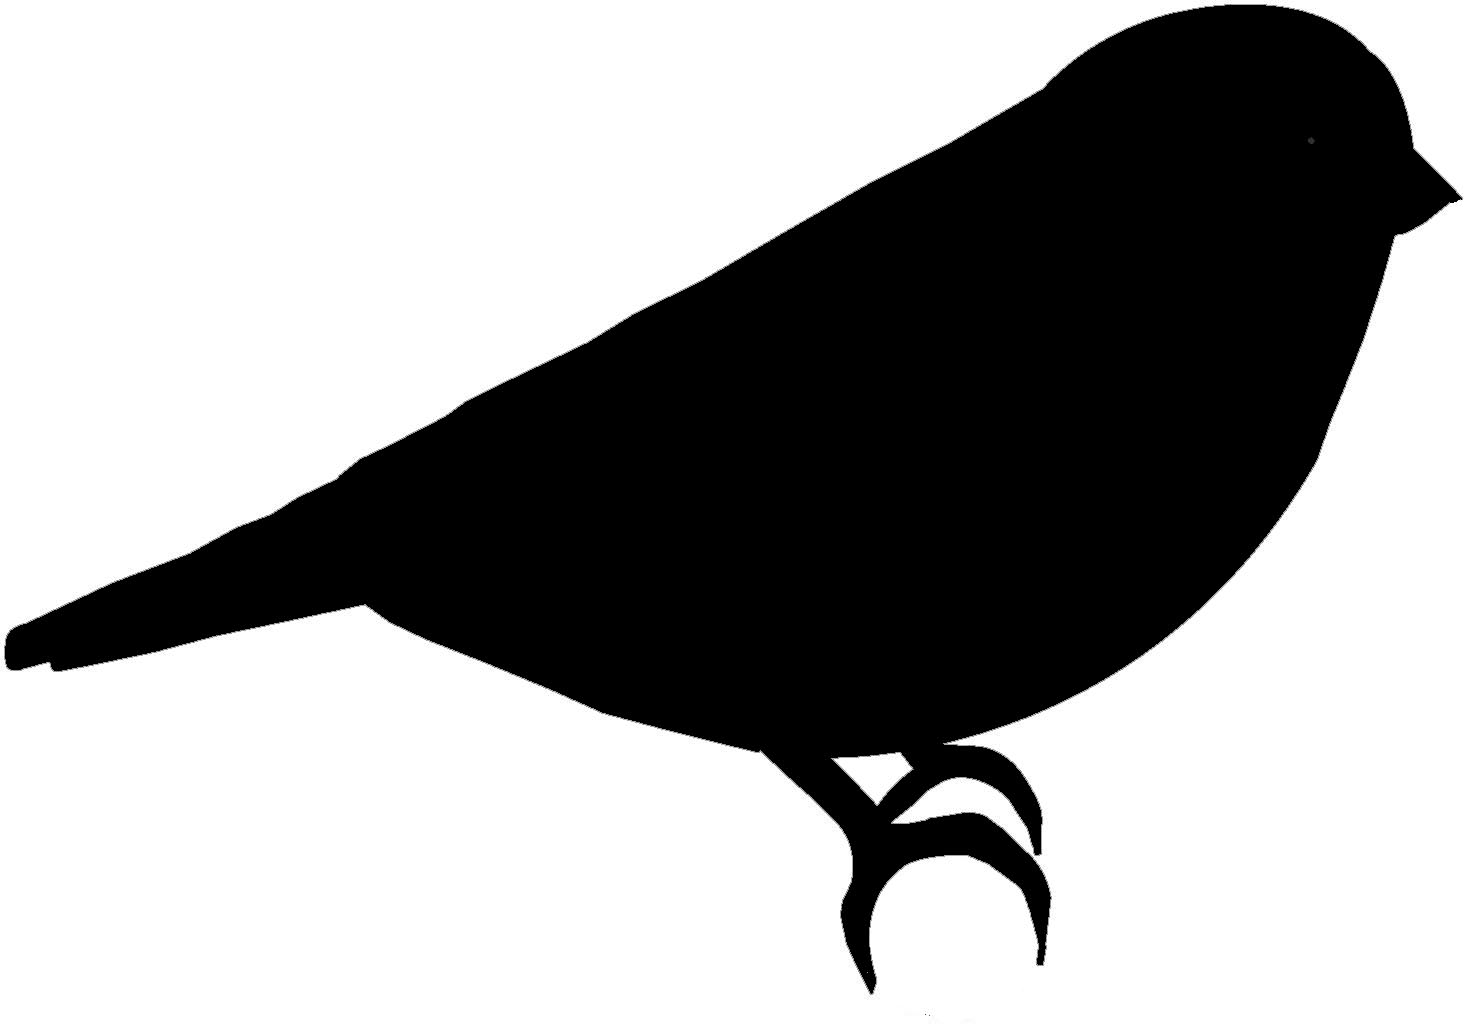 1470x1029 Bird Silhouette Free Download Clip Art On Clipart